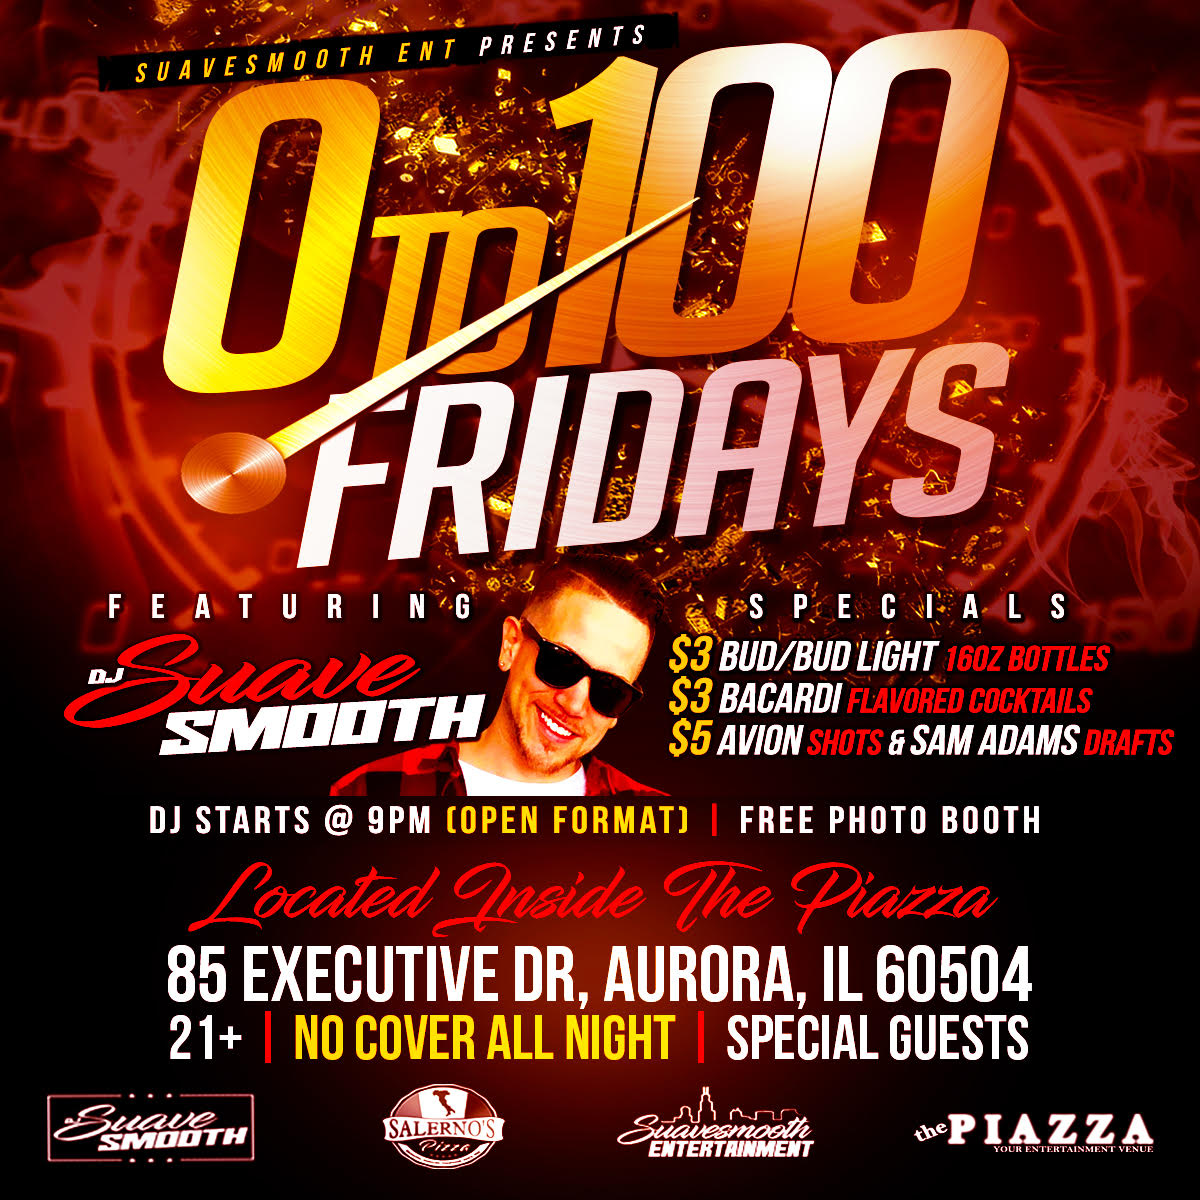 0 to 100 Fridays at The Piazza with DJ Suavesmooth @ the PIAZZA - Aurora